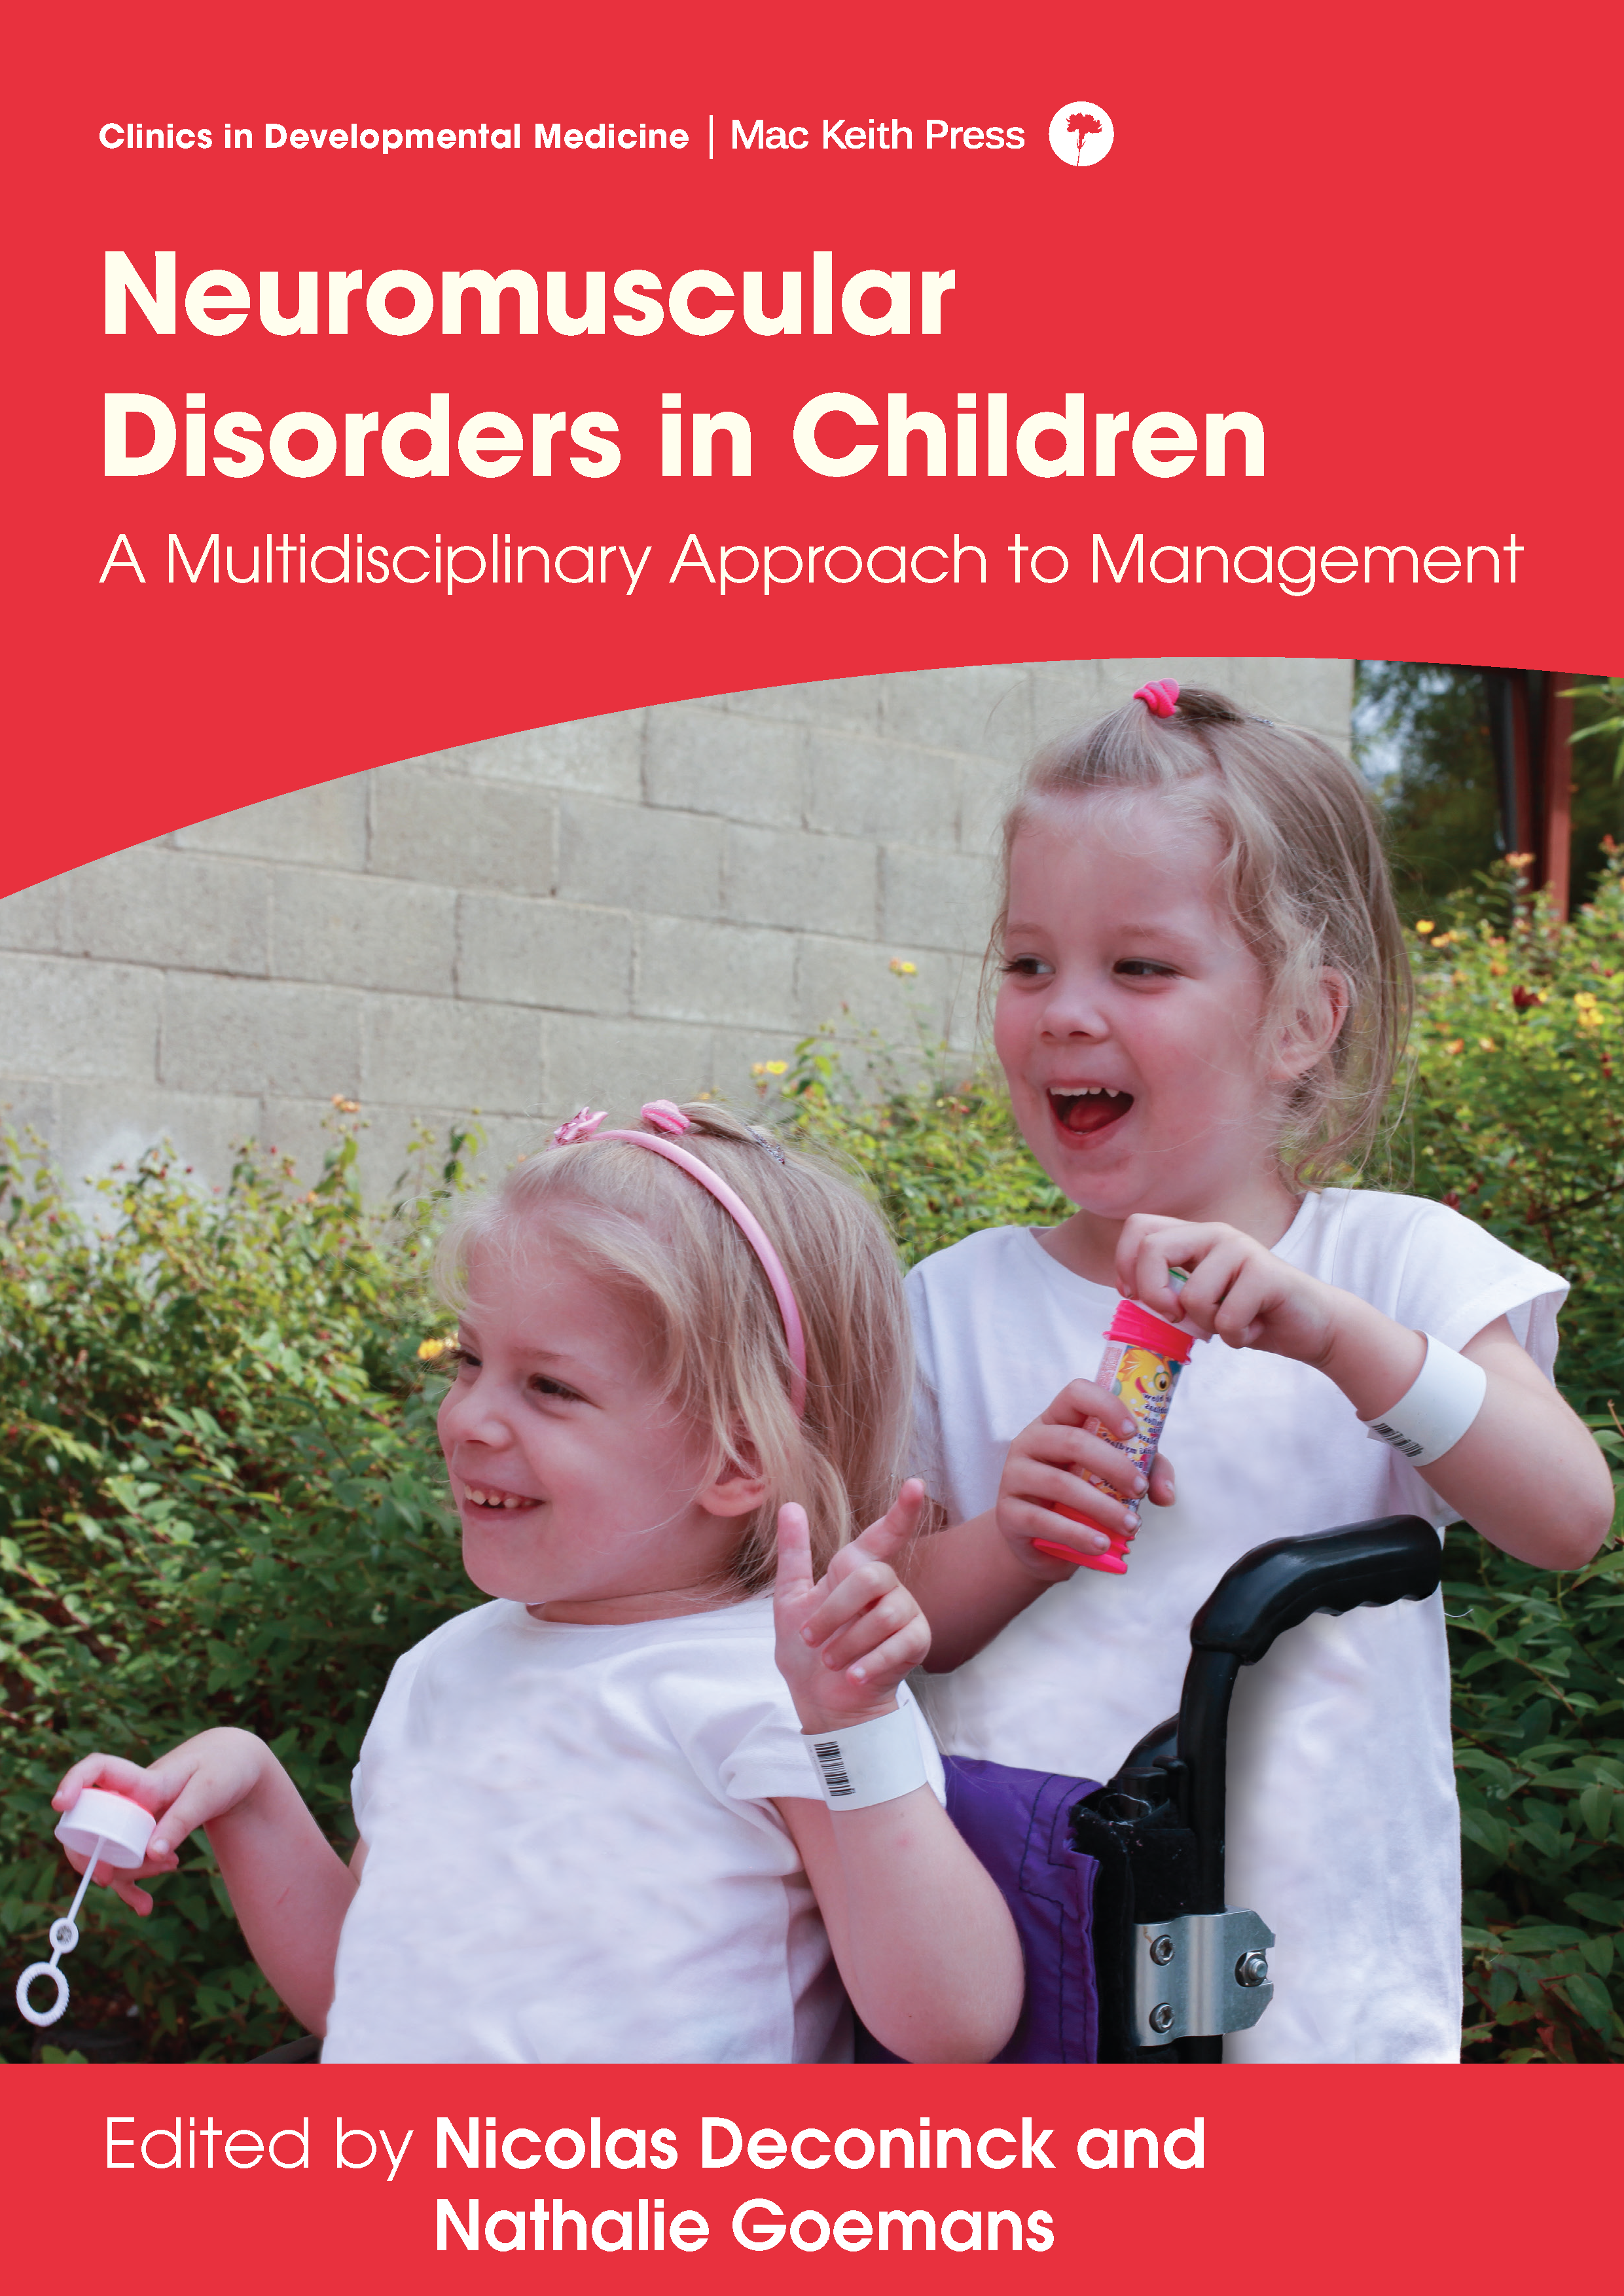 the-management-of-neuromuscular-disorders-in-children-mac-keith-press-clinics-in-developmental-medicine-paediatric-neurology-book